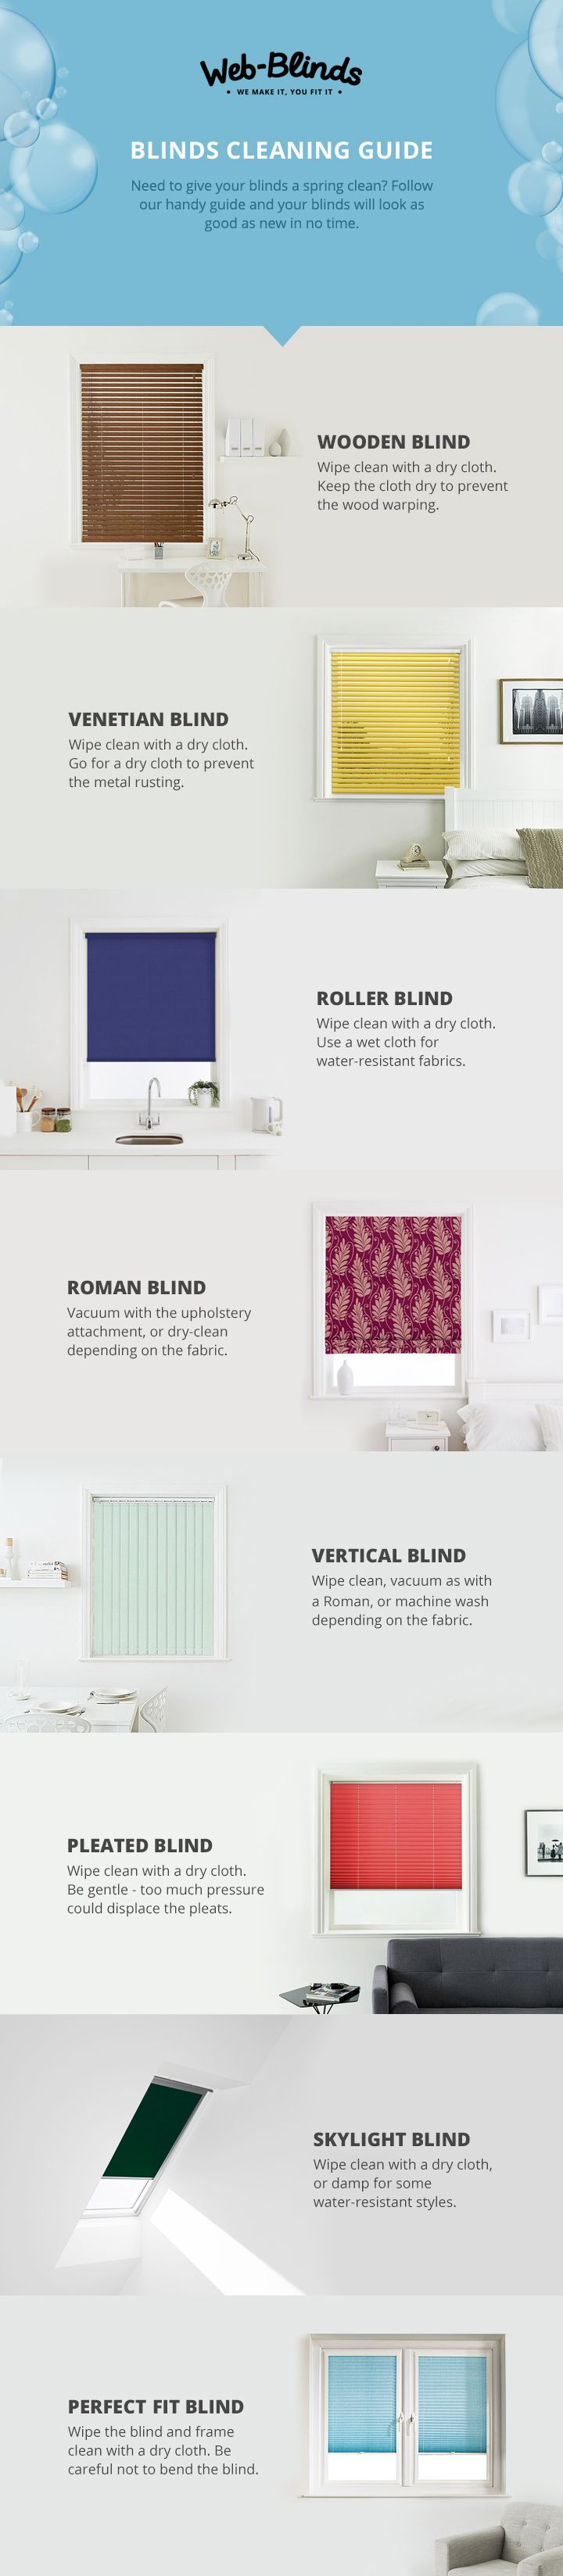 Need to clean your blinds? Whether you've a Roller or a Roman, a Venetian or a Vertical, take a look at our top tips to get yours looking as good as new!